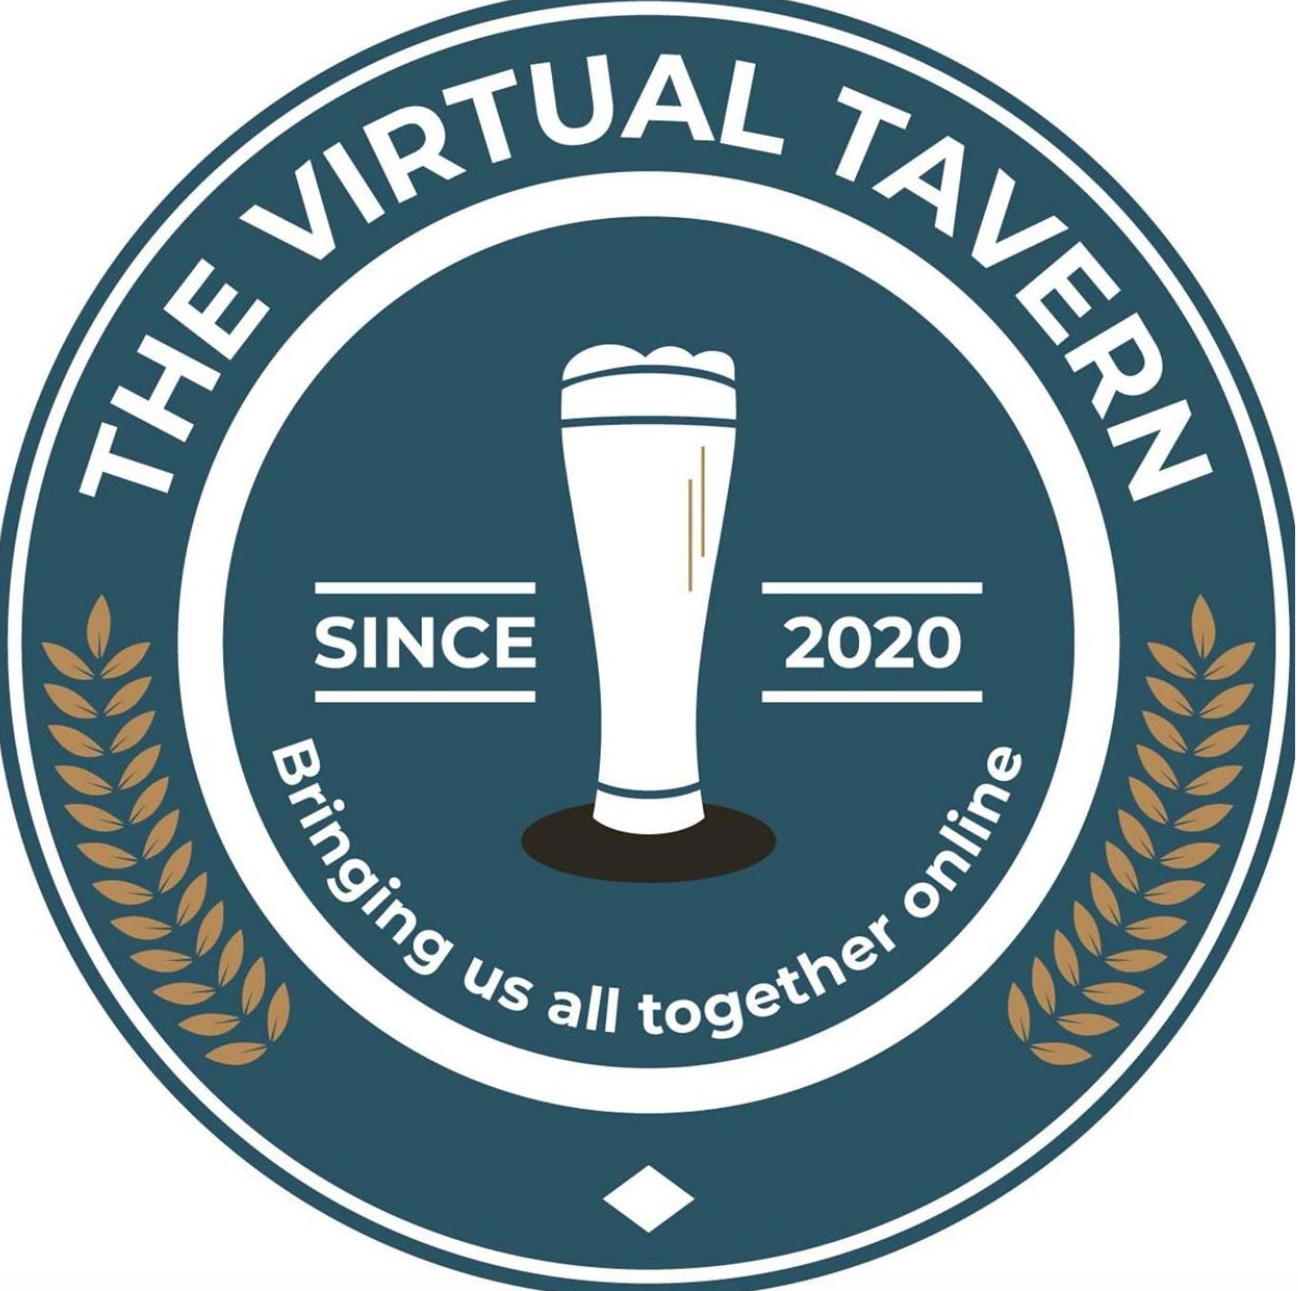 Above: The Virtual Tavern has over 39,000 punters across 76 different countries and territories.